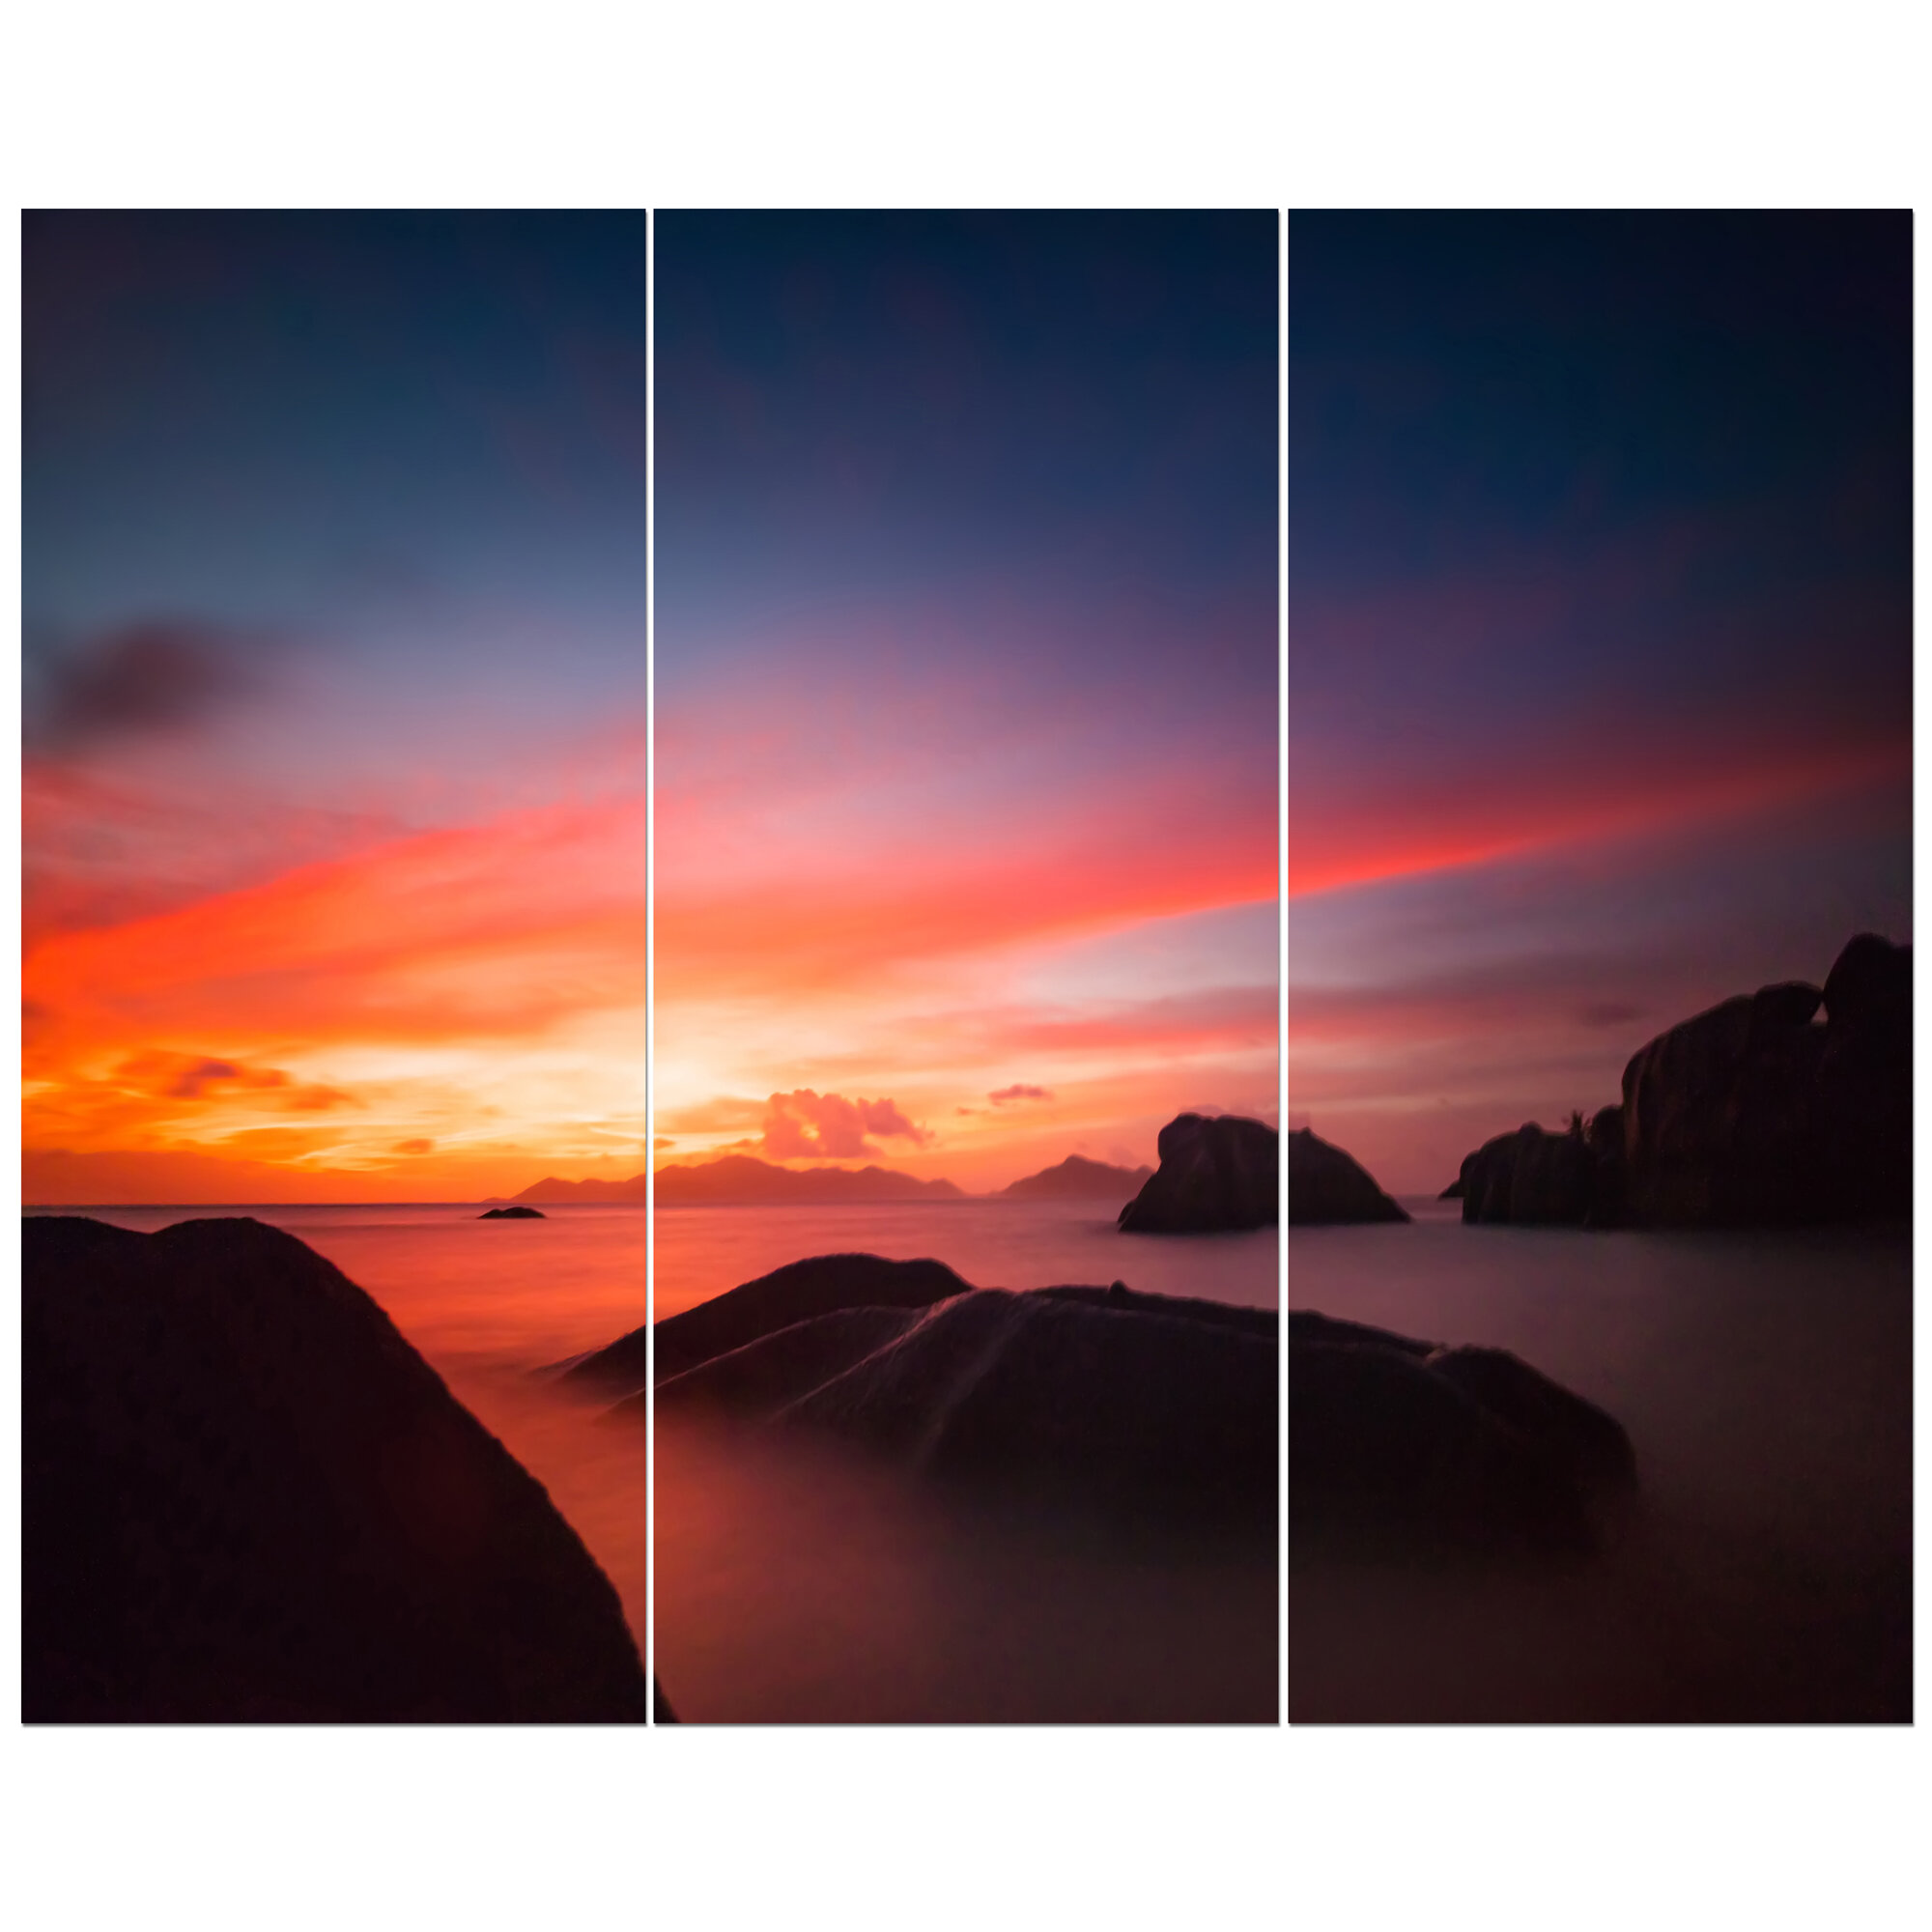 East Urban Home Dramatic Late Sunset Photographic Print Multi Piece Image On Wrapped Canvas Wayfair